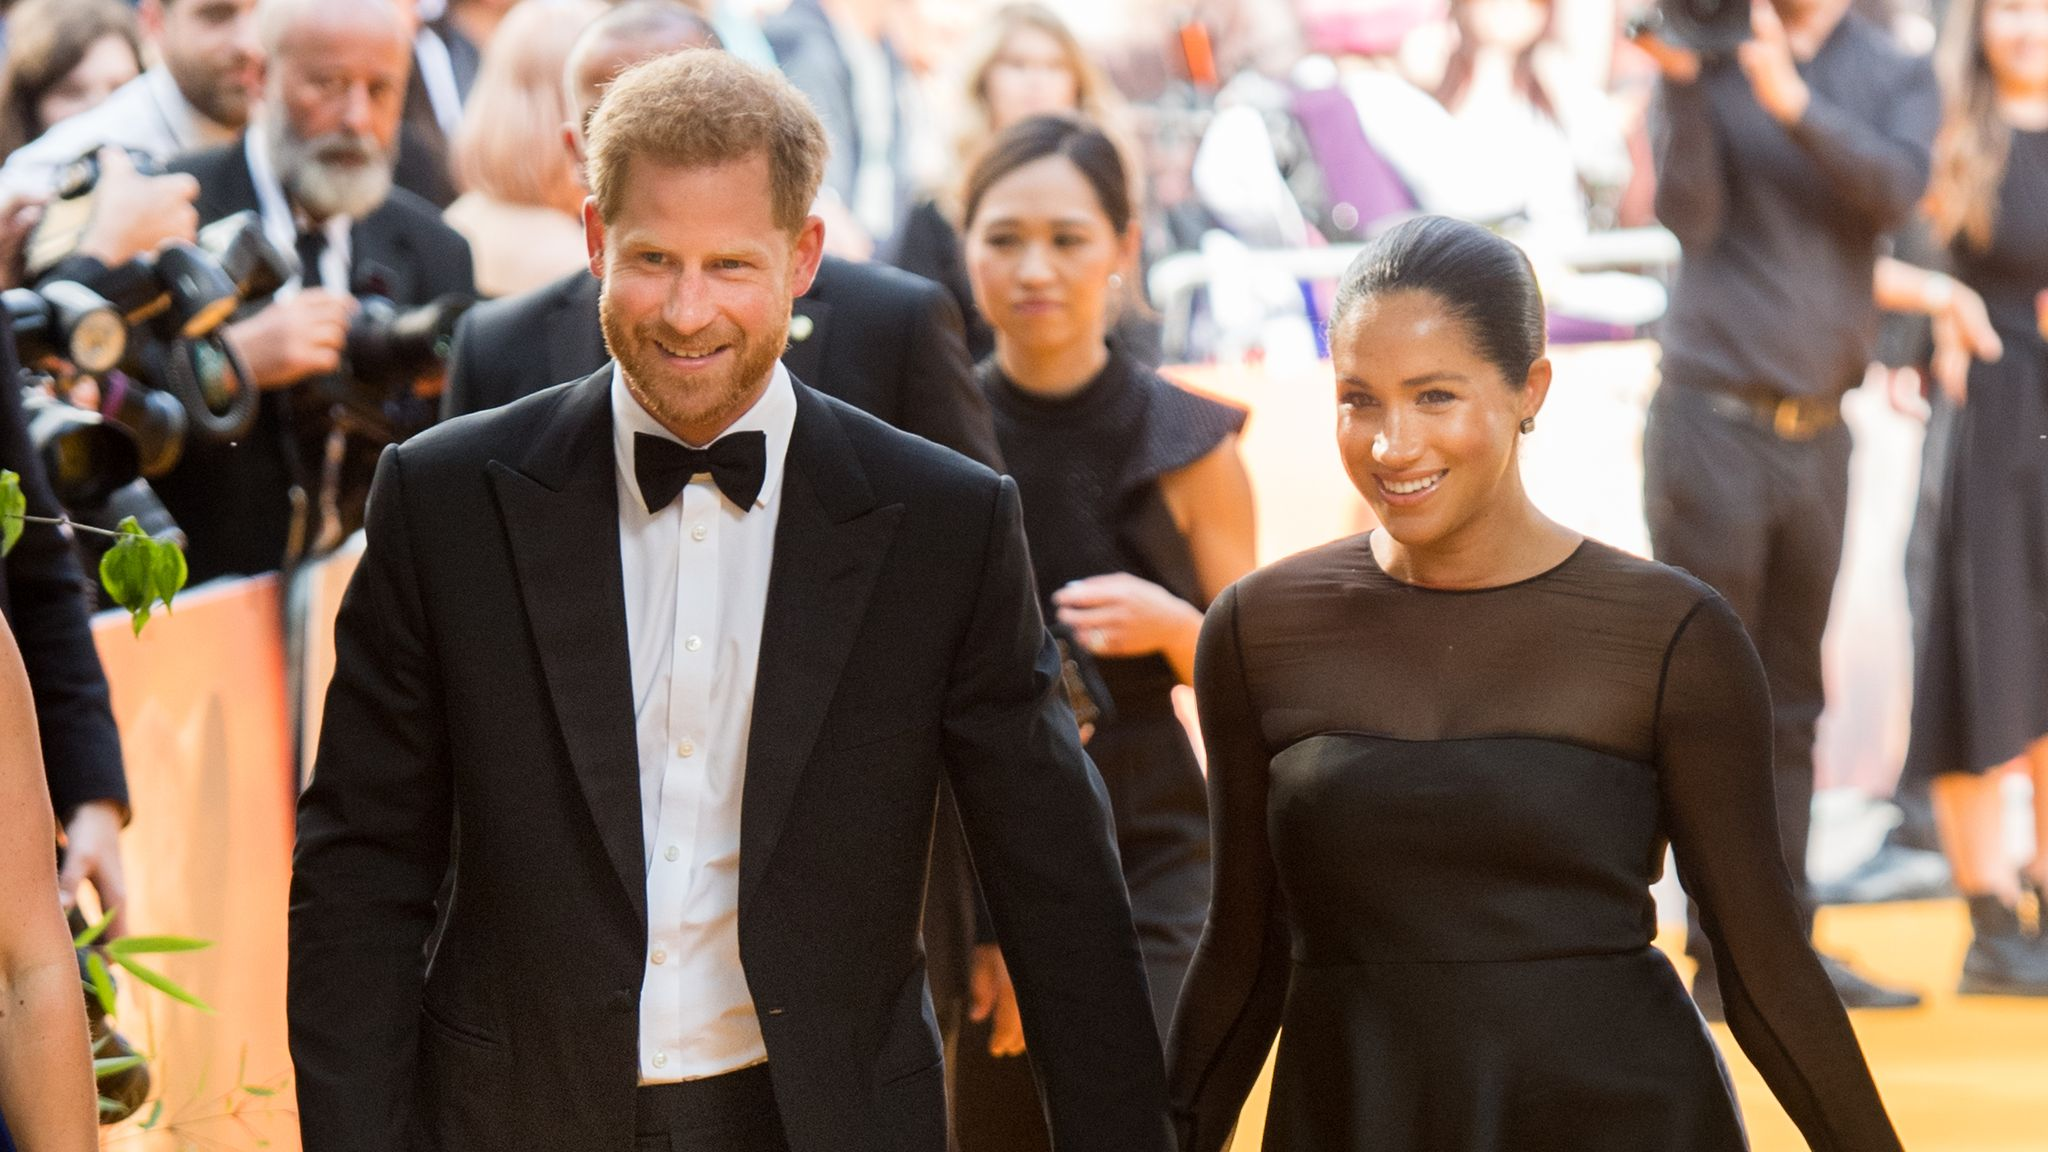 Prince Harry And Meghan Markle Jetted Off To Nice With Baby Archie